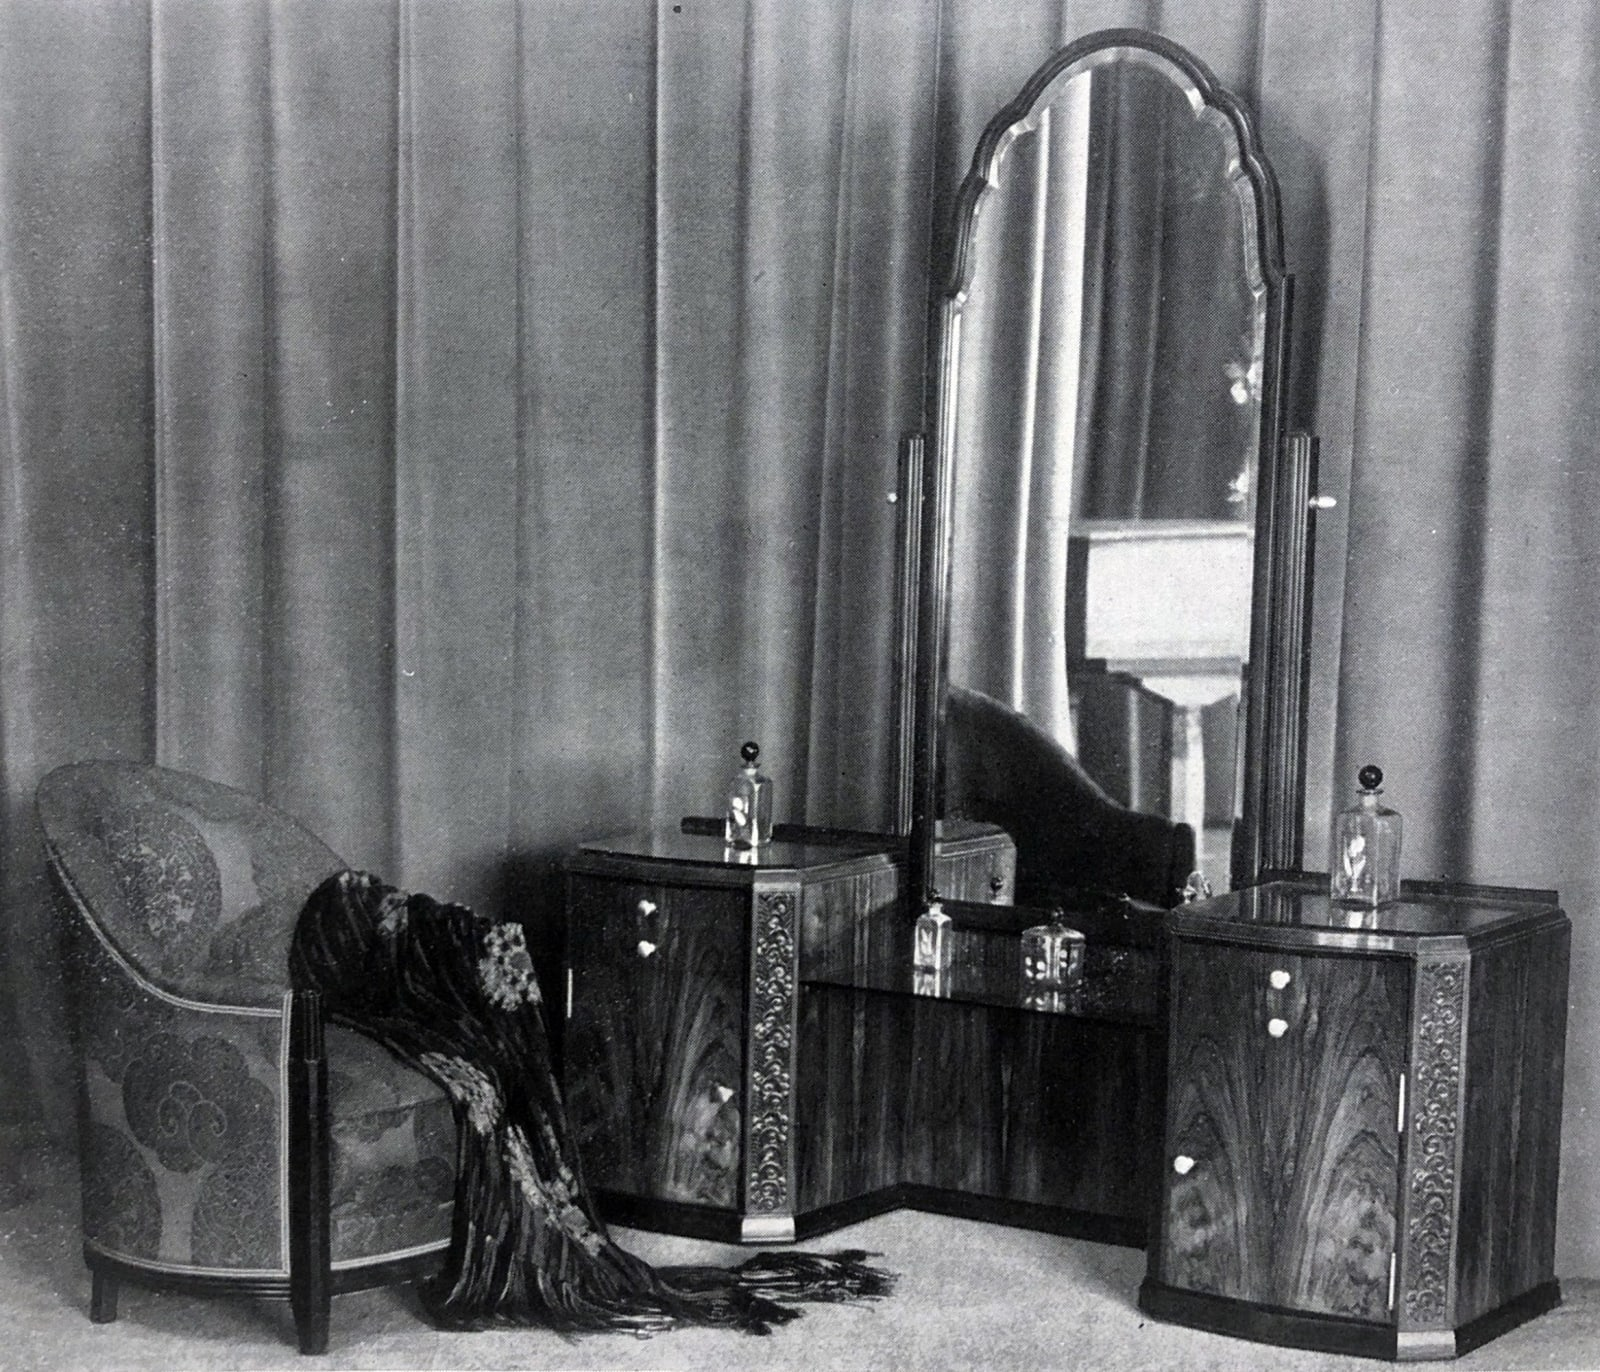 Art Deco furniture by DIM Paris, 1925